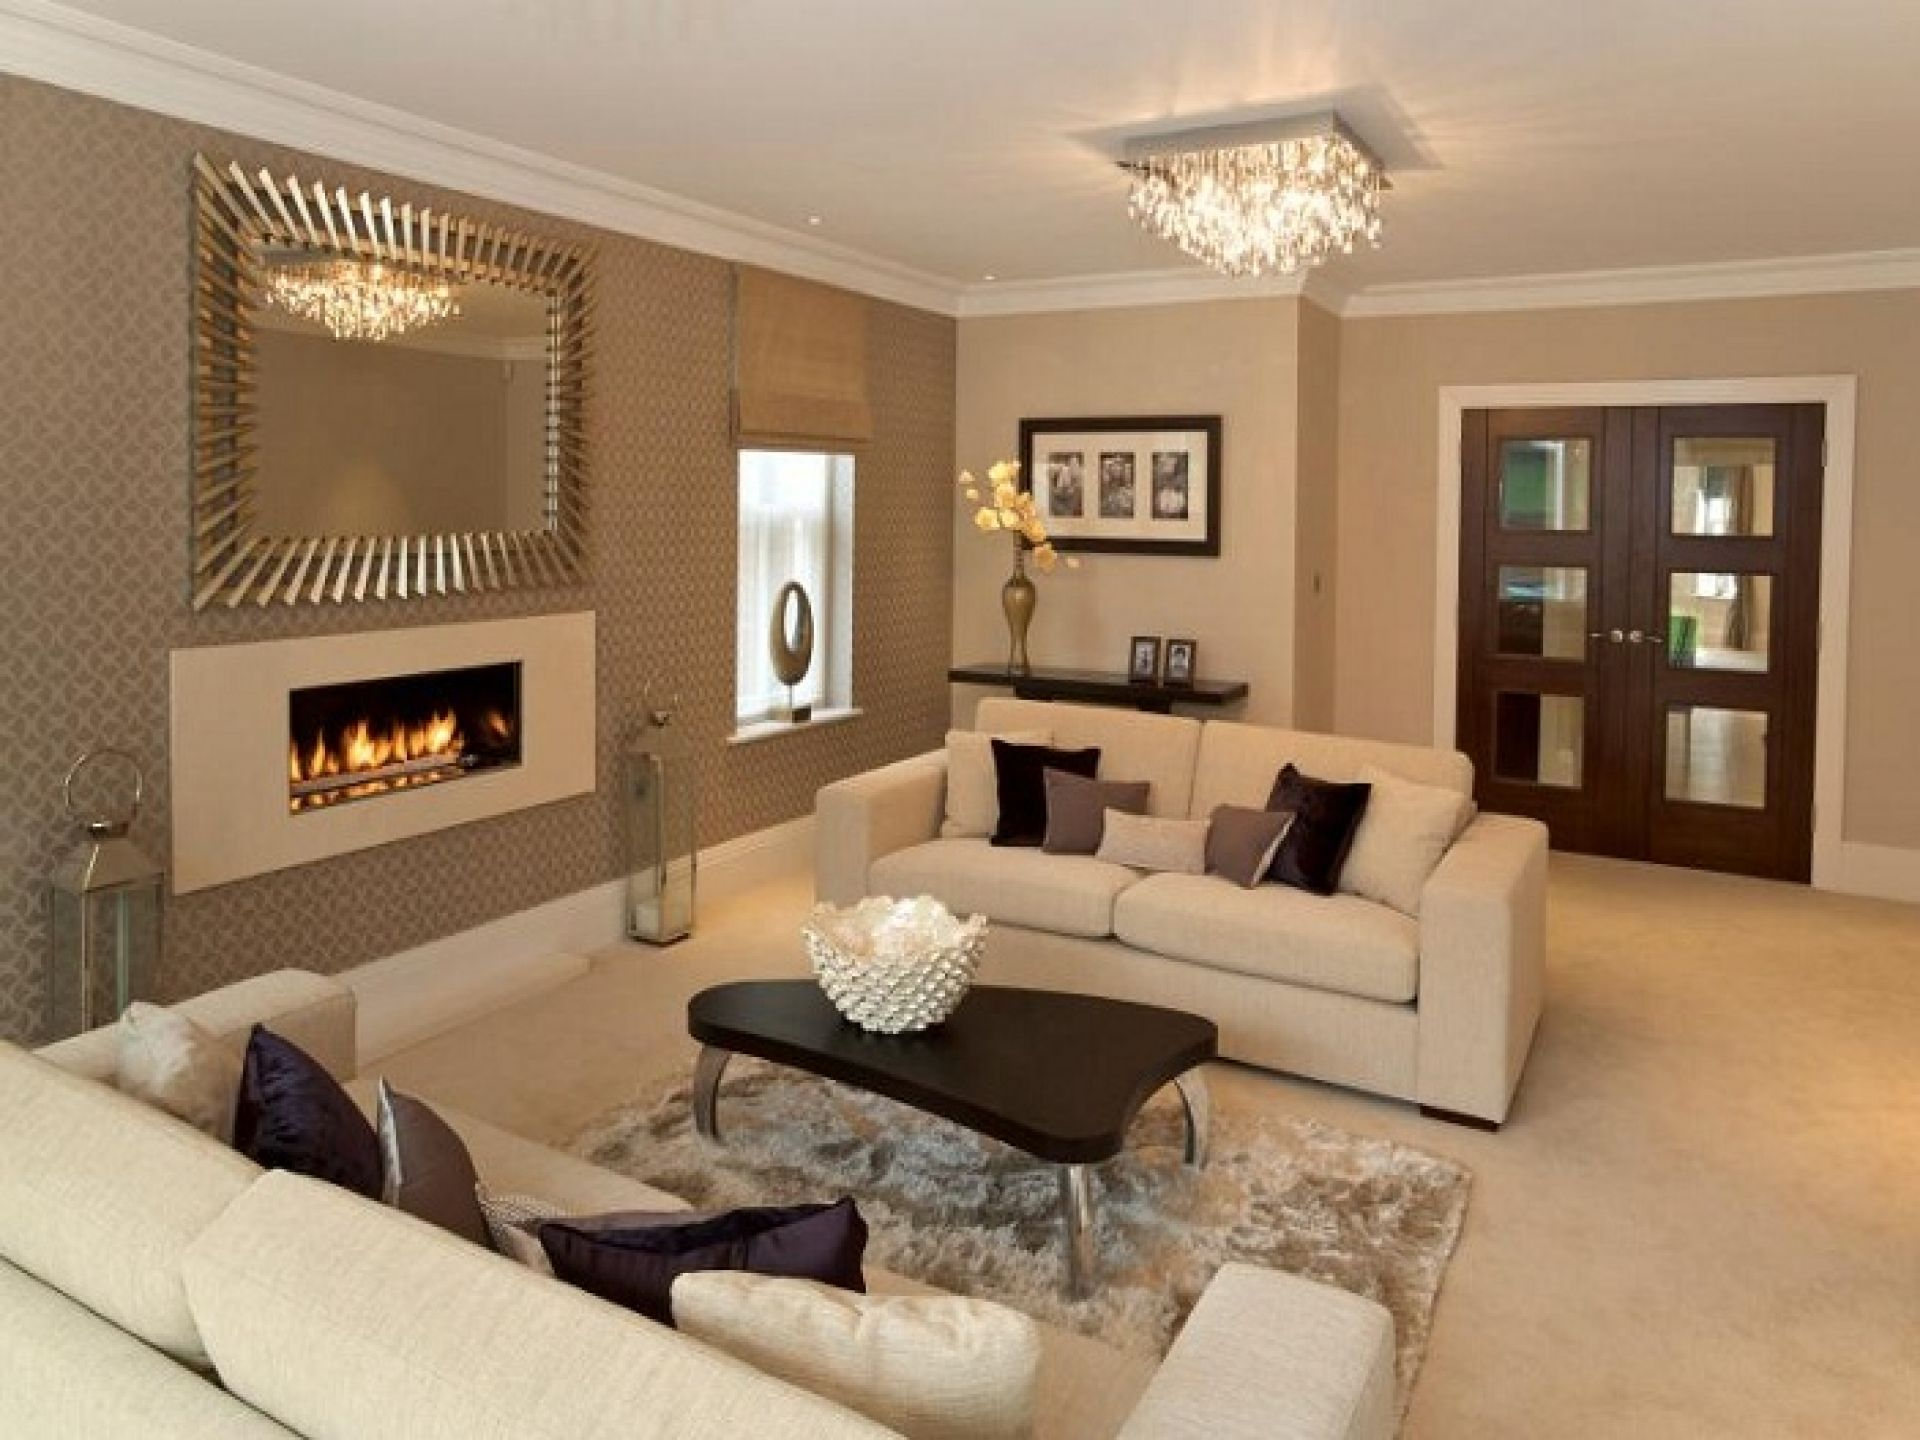 15 EXCLUSIVE LIVING ROOM IDEAS FOR THE PERFECT HOME | Living ...